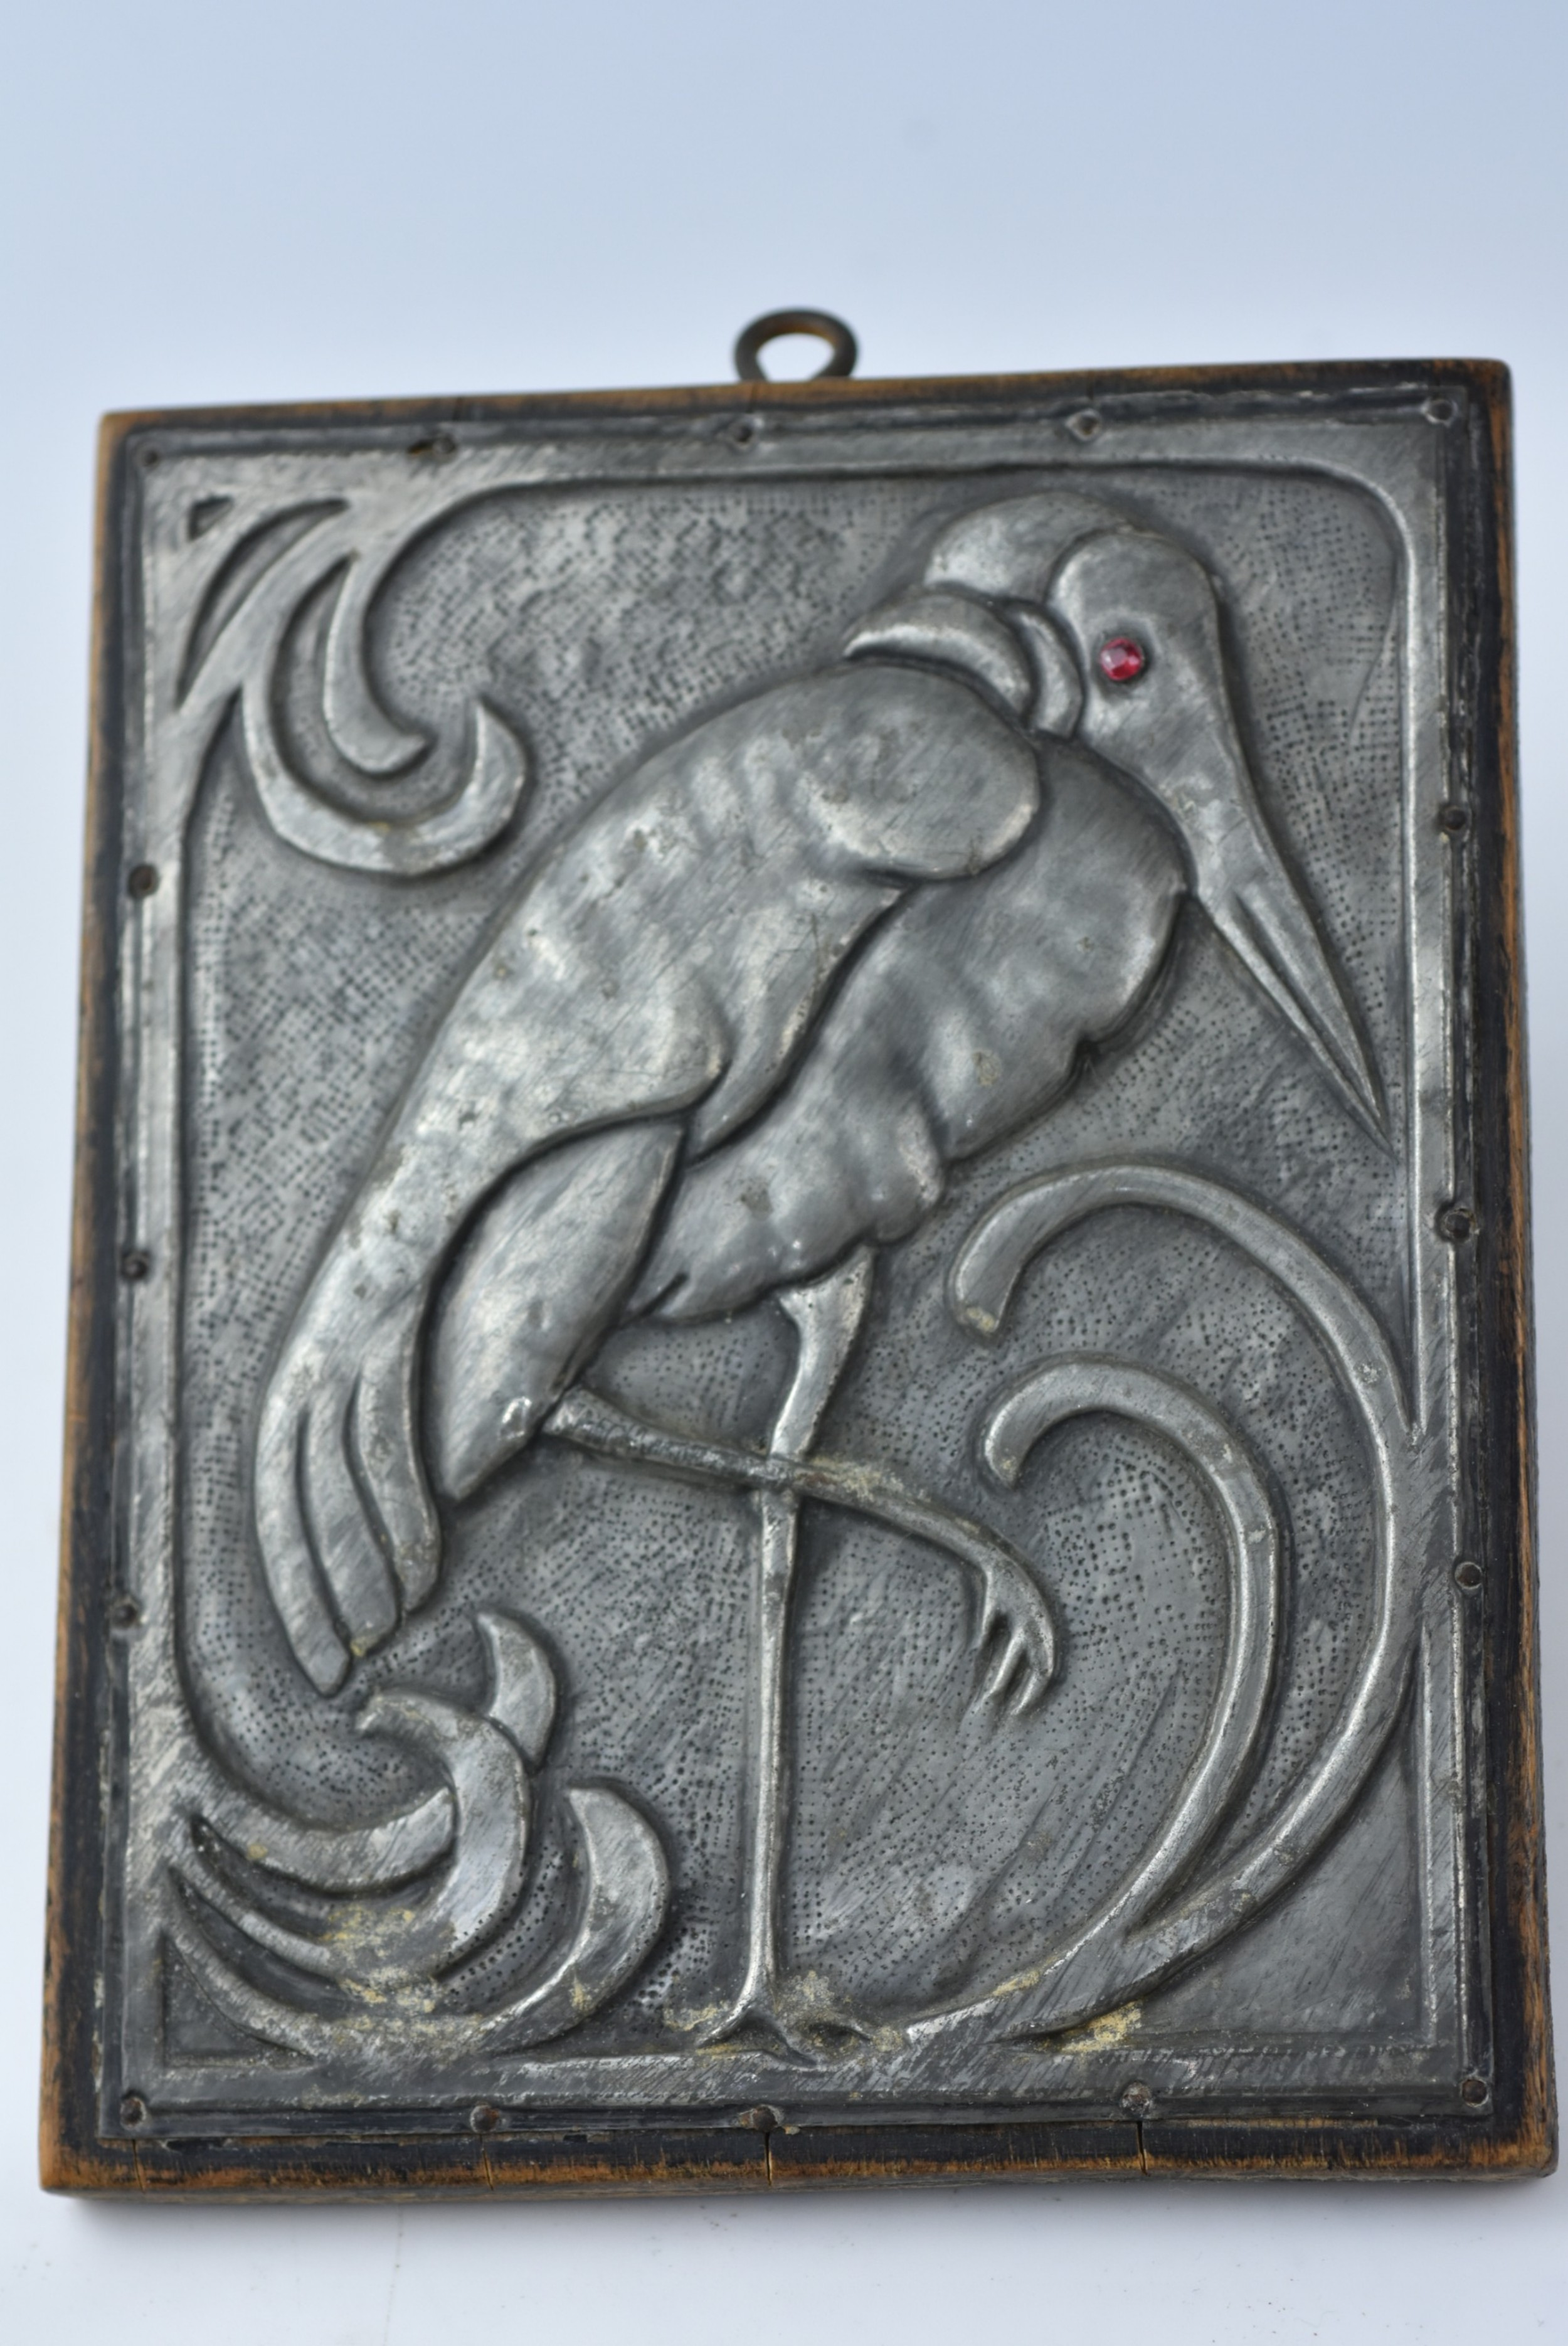 stylish aesthetic movement heron pewter plaque on wooden mount c1890